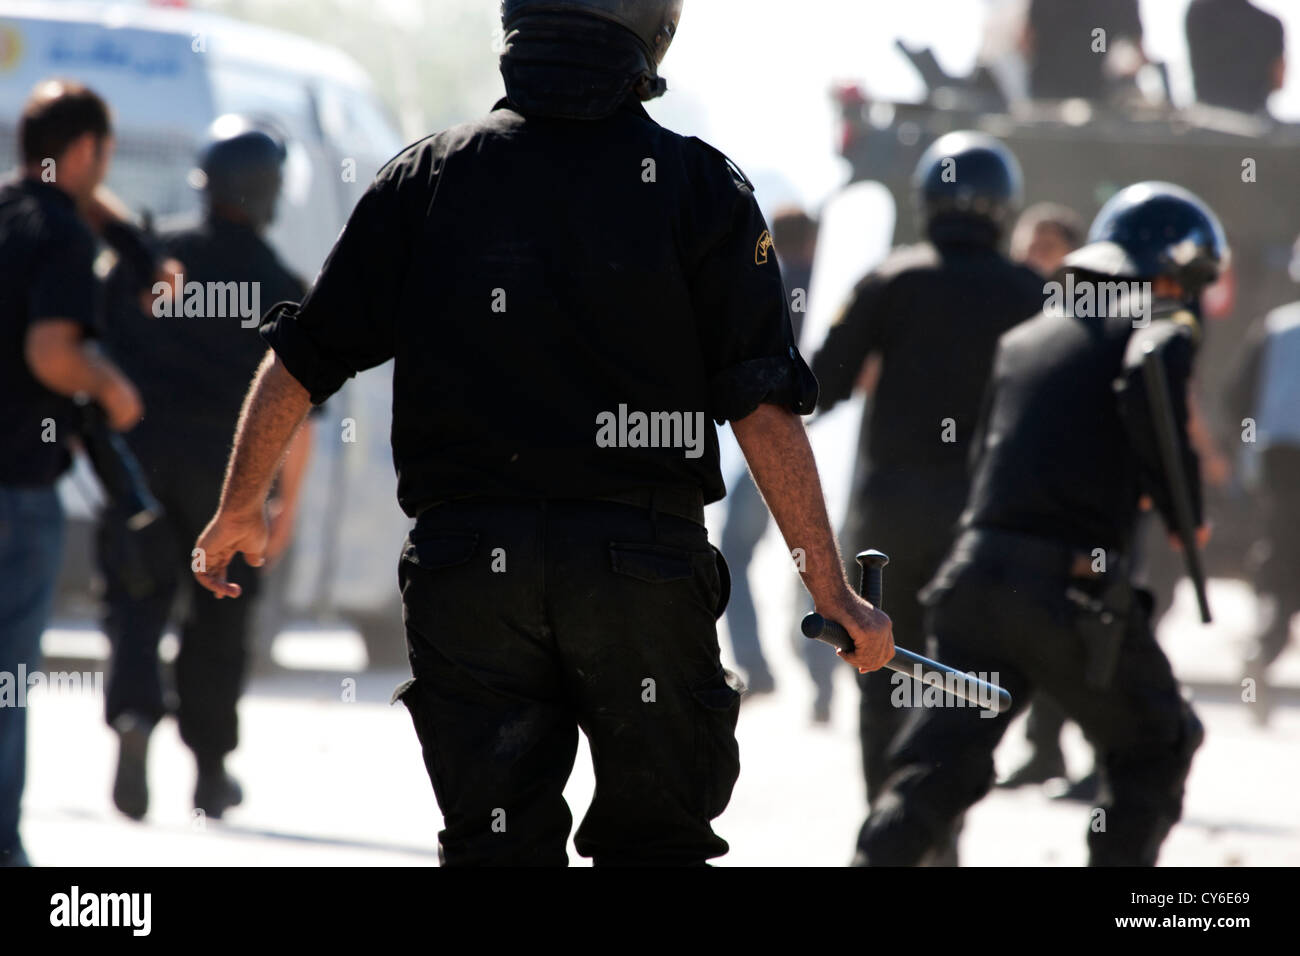 Tunisian riot police charge protesters during violent riots that led to the storming of the US embassy in Tunisia - Stock Image